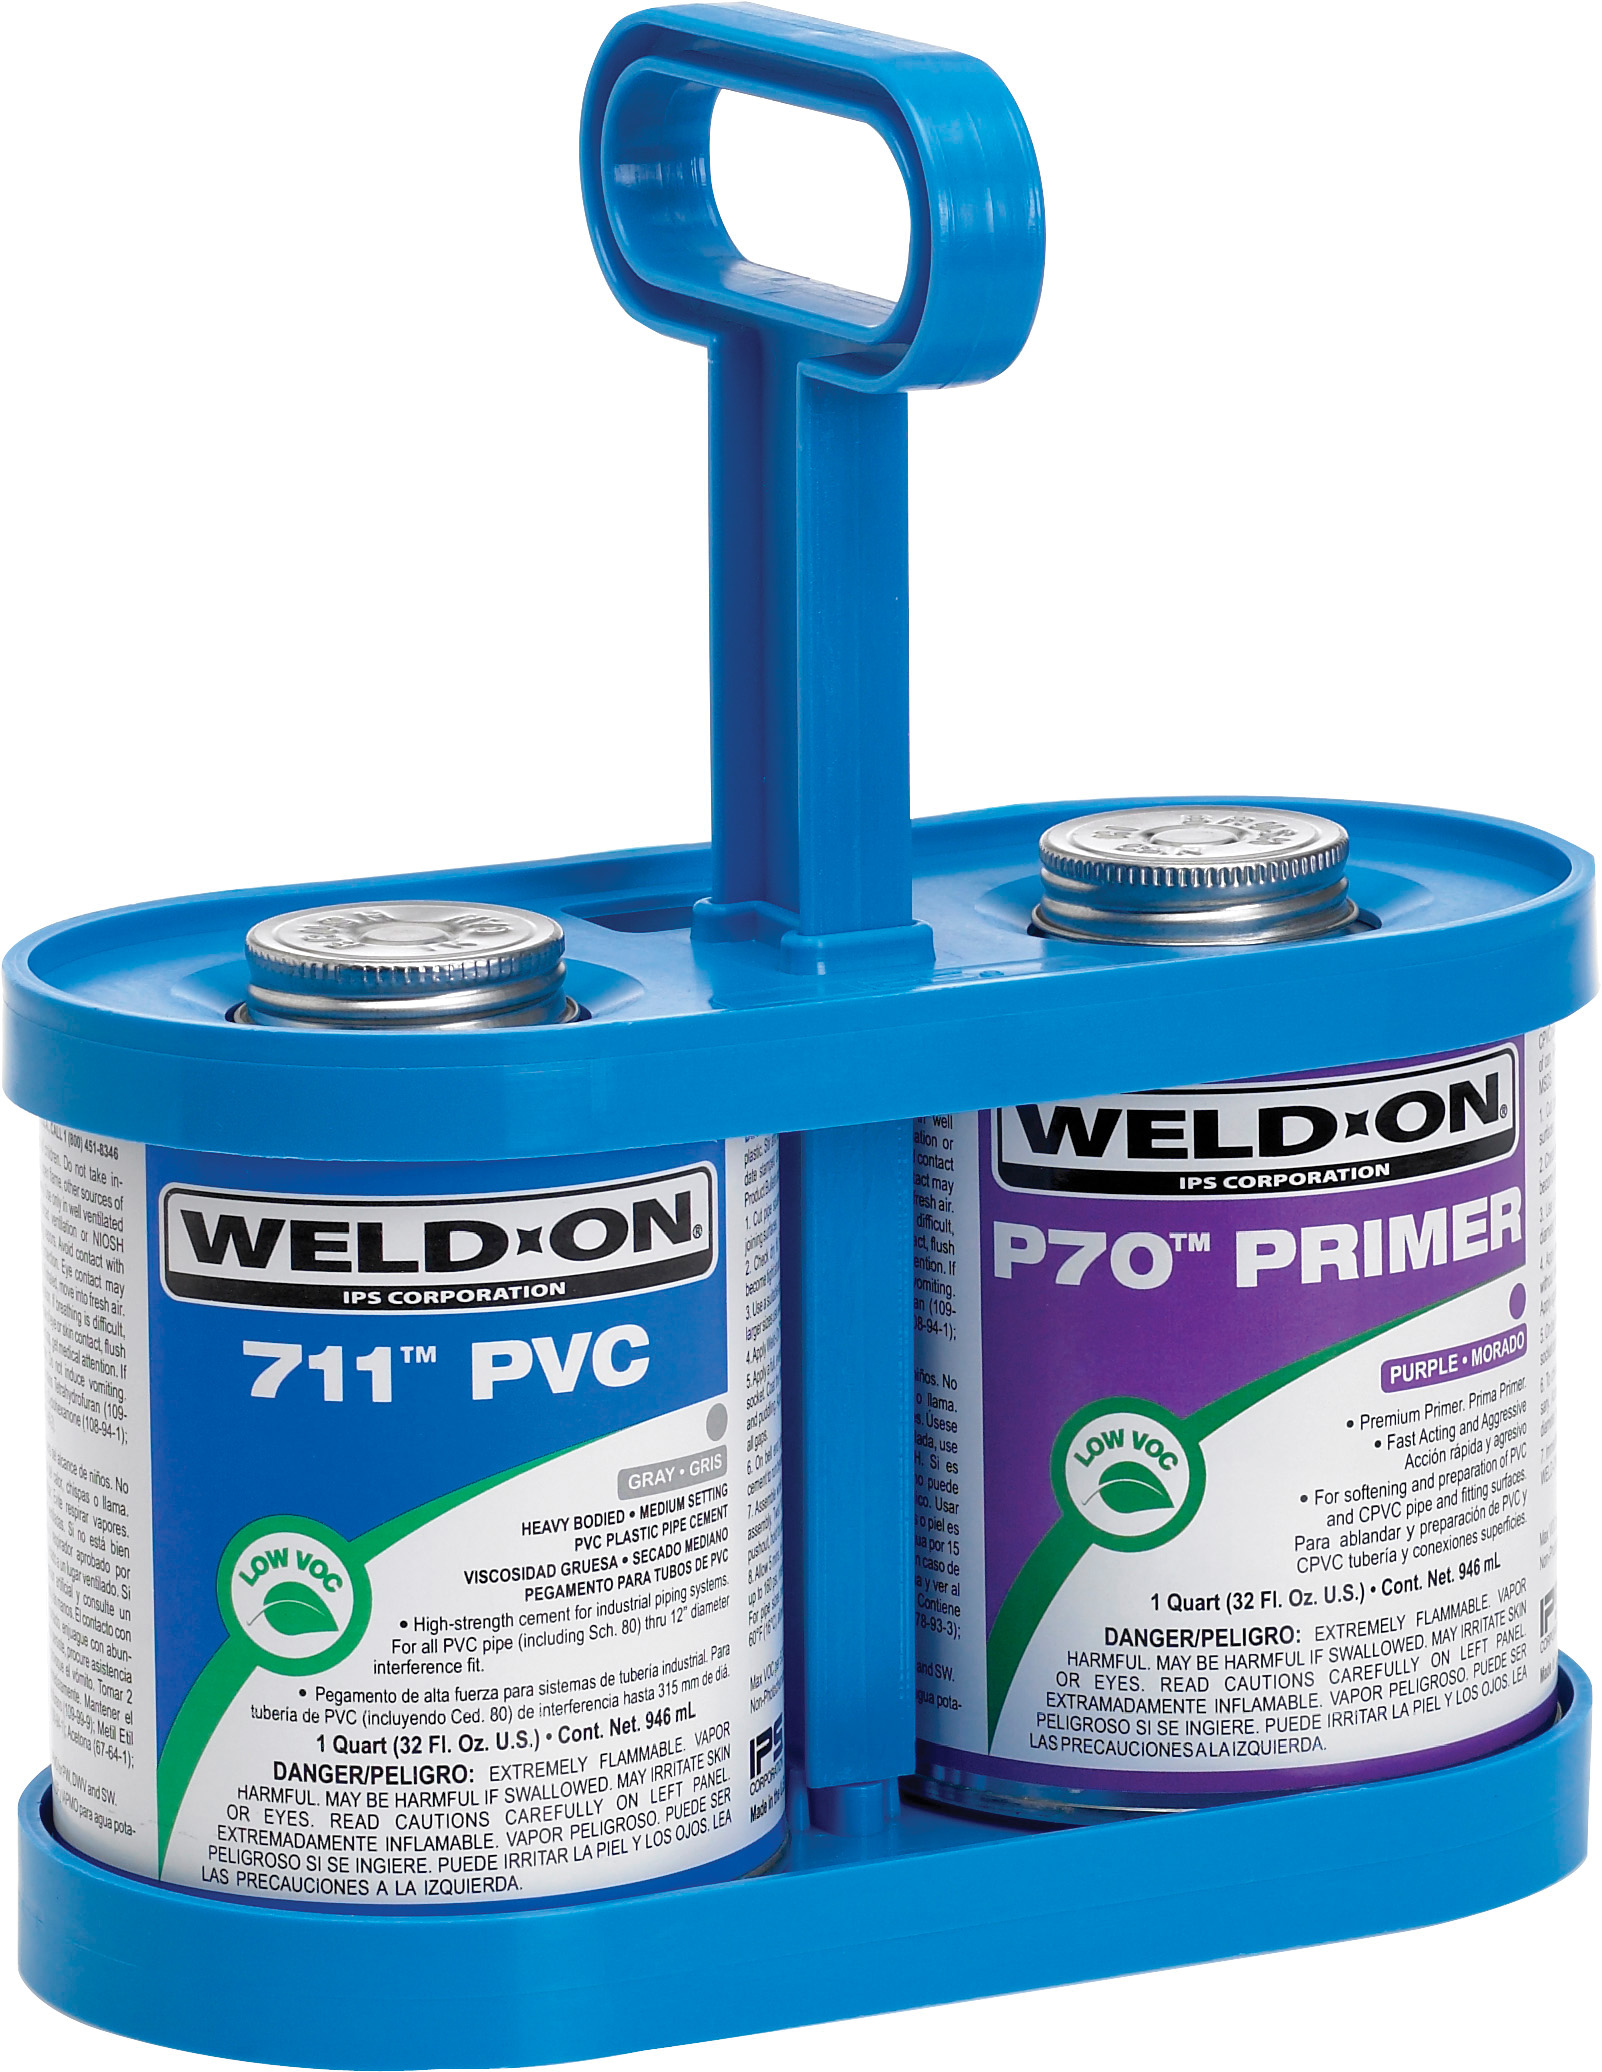 Weld-On CanTote for carrying quart & pint cement cans